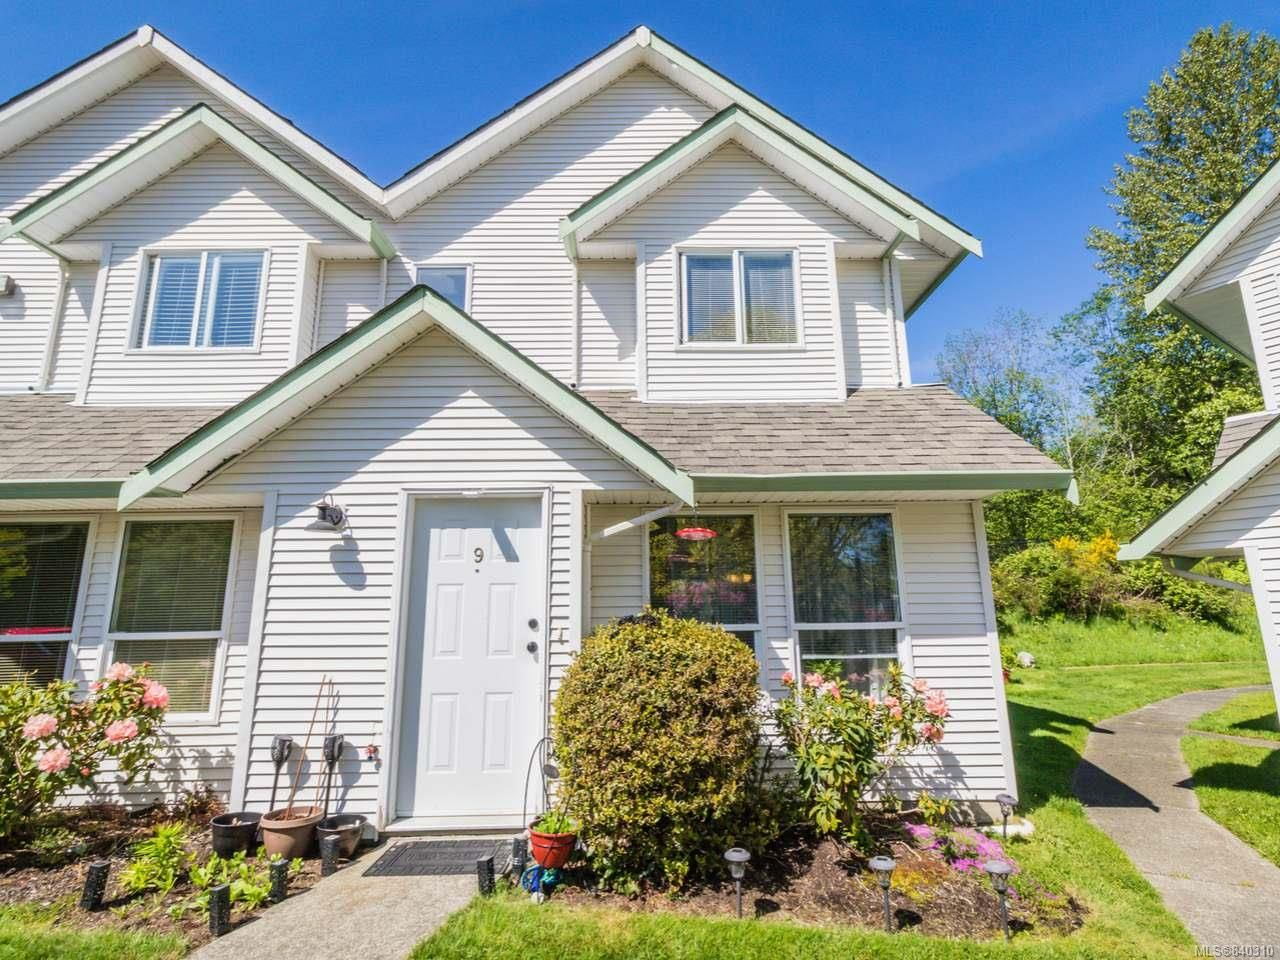 Main Photo: 9 1315 Creekside Way in CAMPBELL RIVER: CR Willow Point Row/Townhouse for sale (Campbell River)  : MLS®# 840310